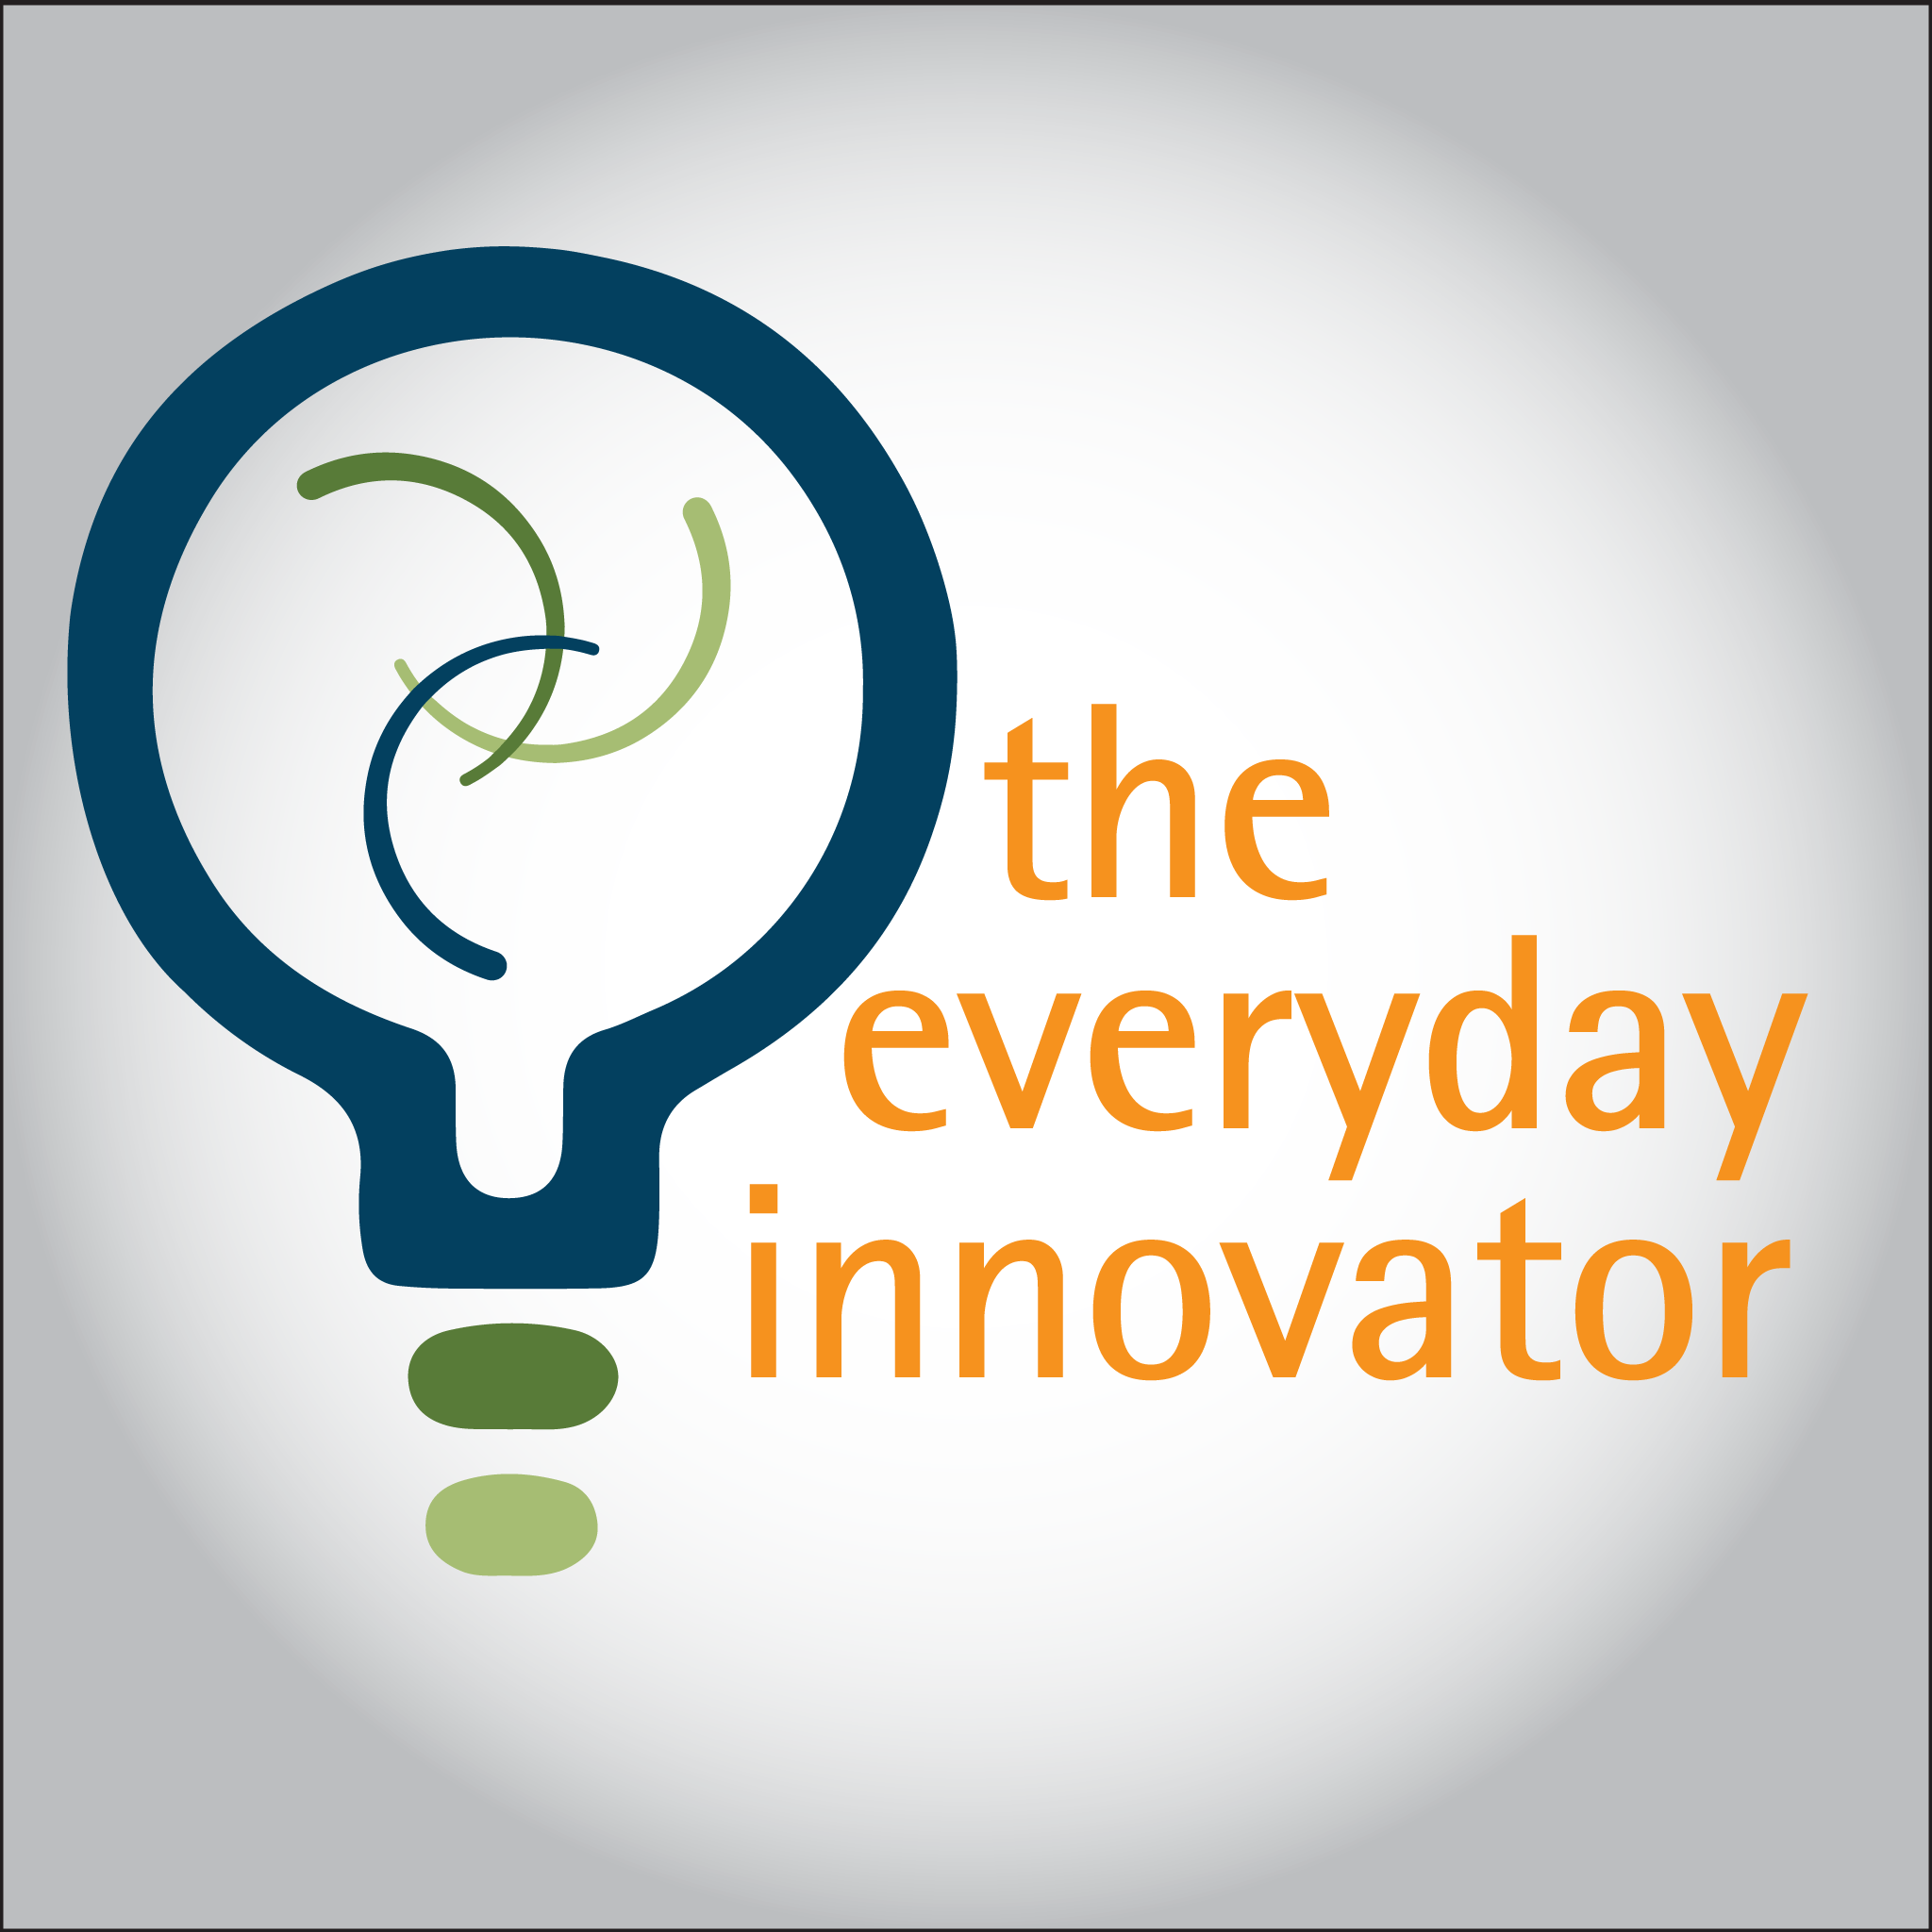 Practices and Ideas for Product Managers and Innovators | The Everyday Innovator | Chad McAllister